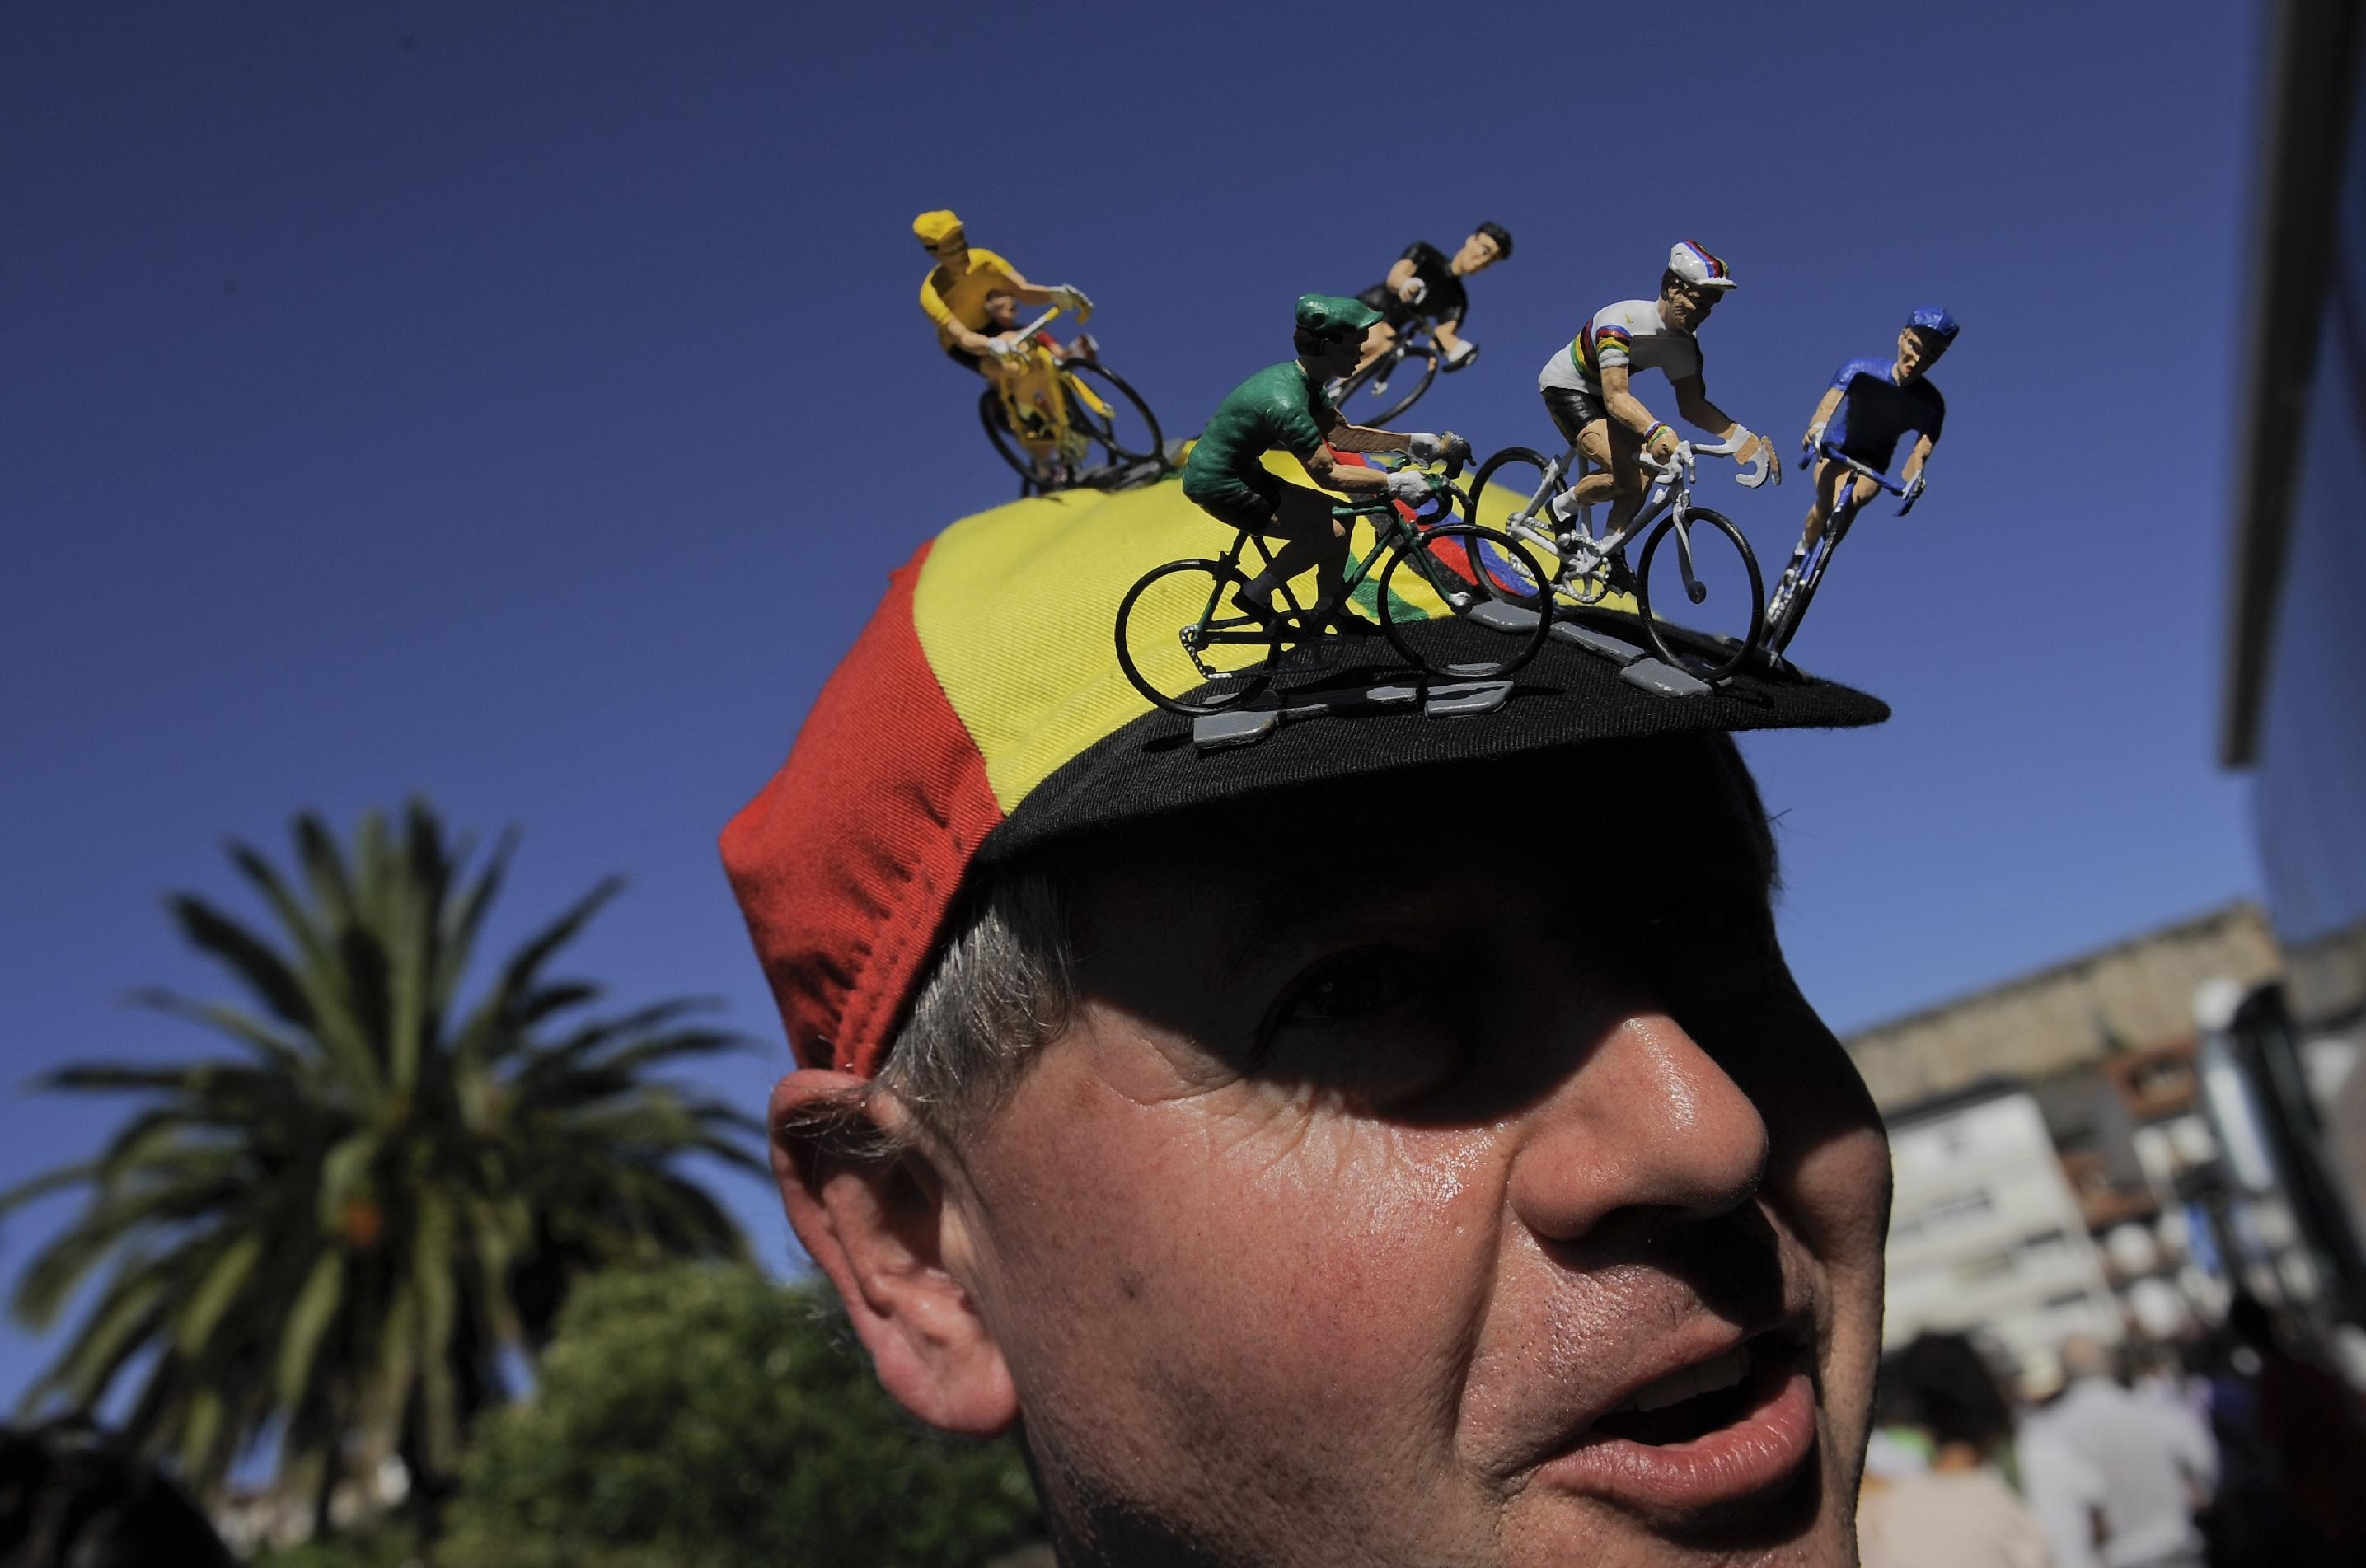 A spectator of the Spanish La Vuelta cycling race, wearing on his cap toy cyclists, before the start of the 19th stage of the  race, a 181-kilometer (112.5-mile) leg between San Vicente de La Barquera and Oviedo, in San Vicente de La Barquera, northern Spain, Friday, Sept. 13, 2013